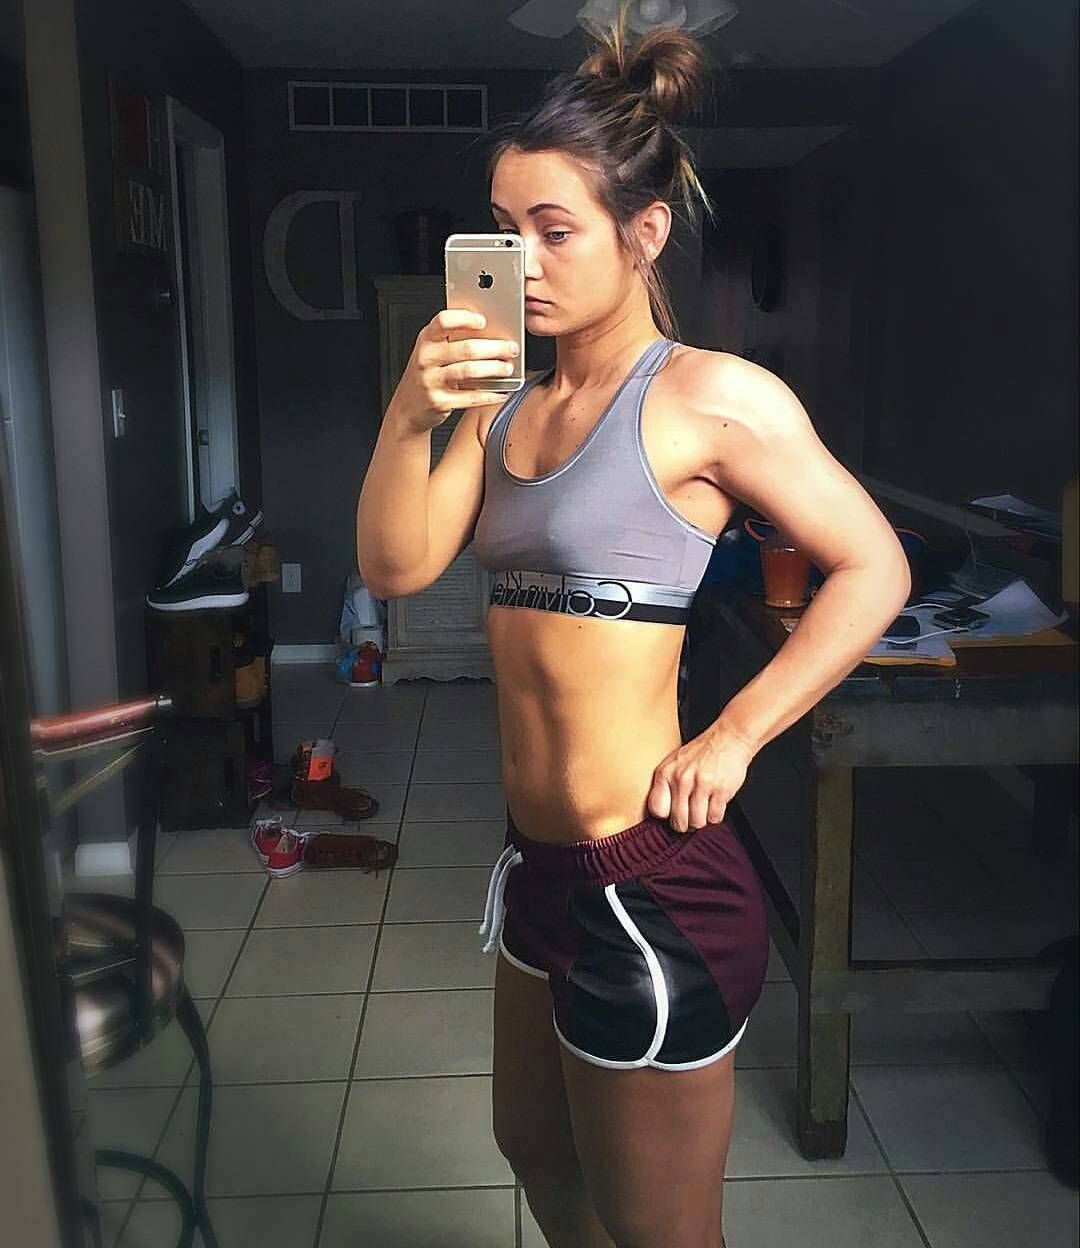 The fit and lean beauty😍💯 @corrina_westfall! 💪👌